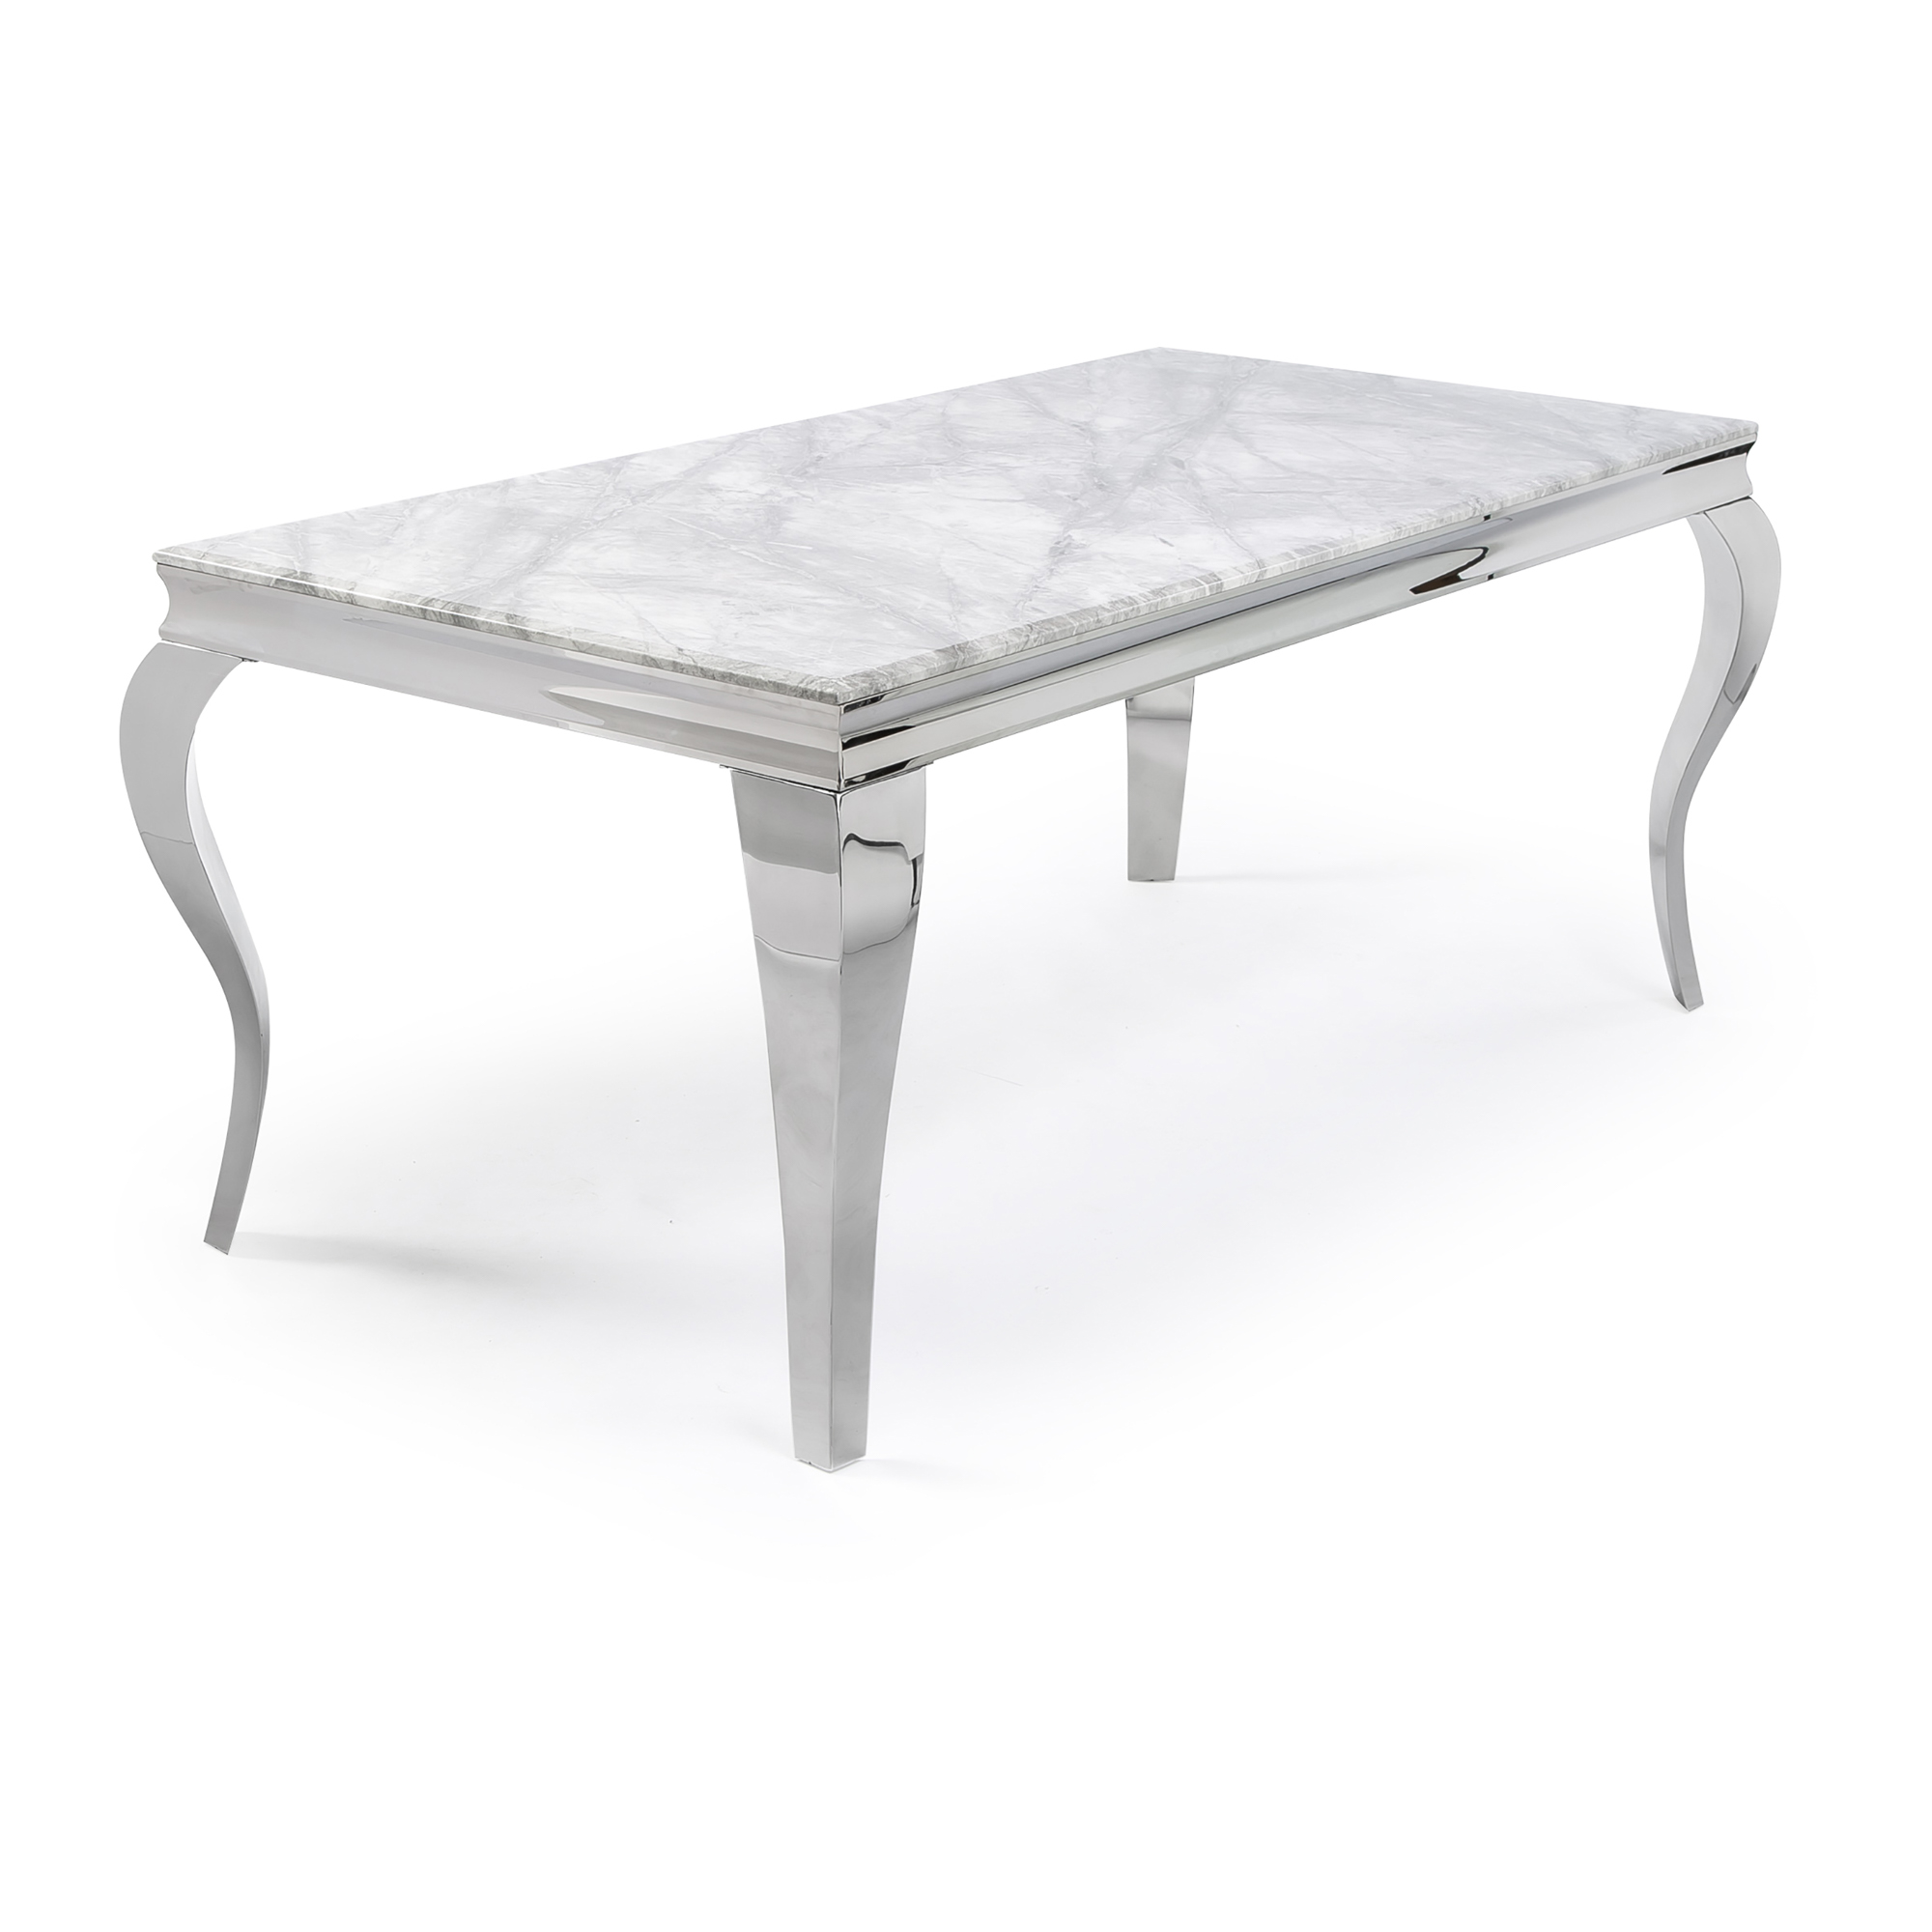 1.6m Louis Steel & Grey Marble Dining Table Set with 4 Dove Grey Knightsbridge Velvet Dining Chairs